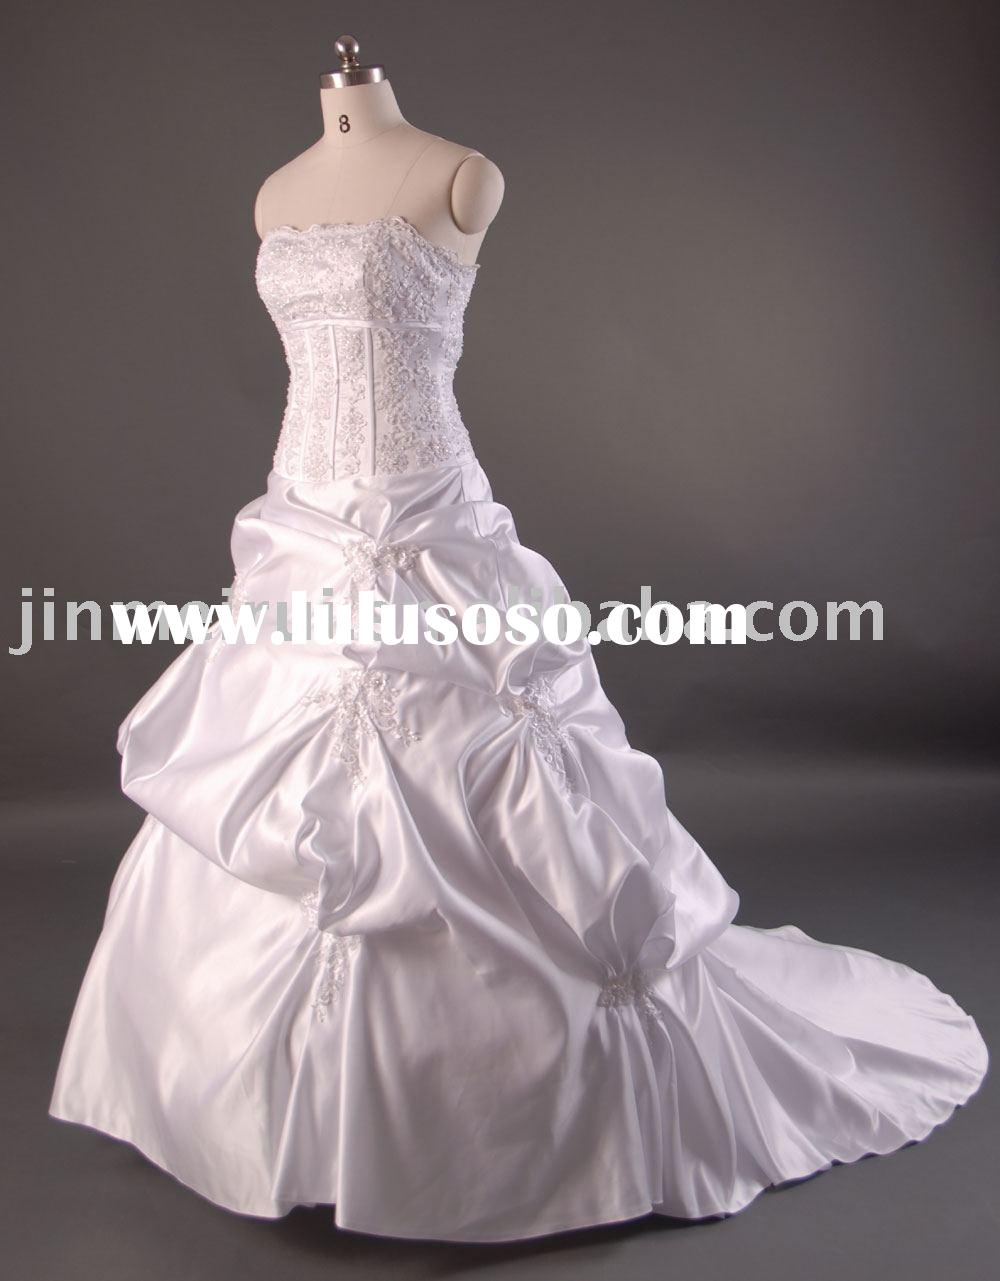 wedding gown dress tea length wedding dress, lace wedding dress  JR-8815